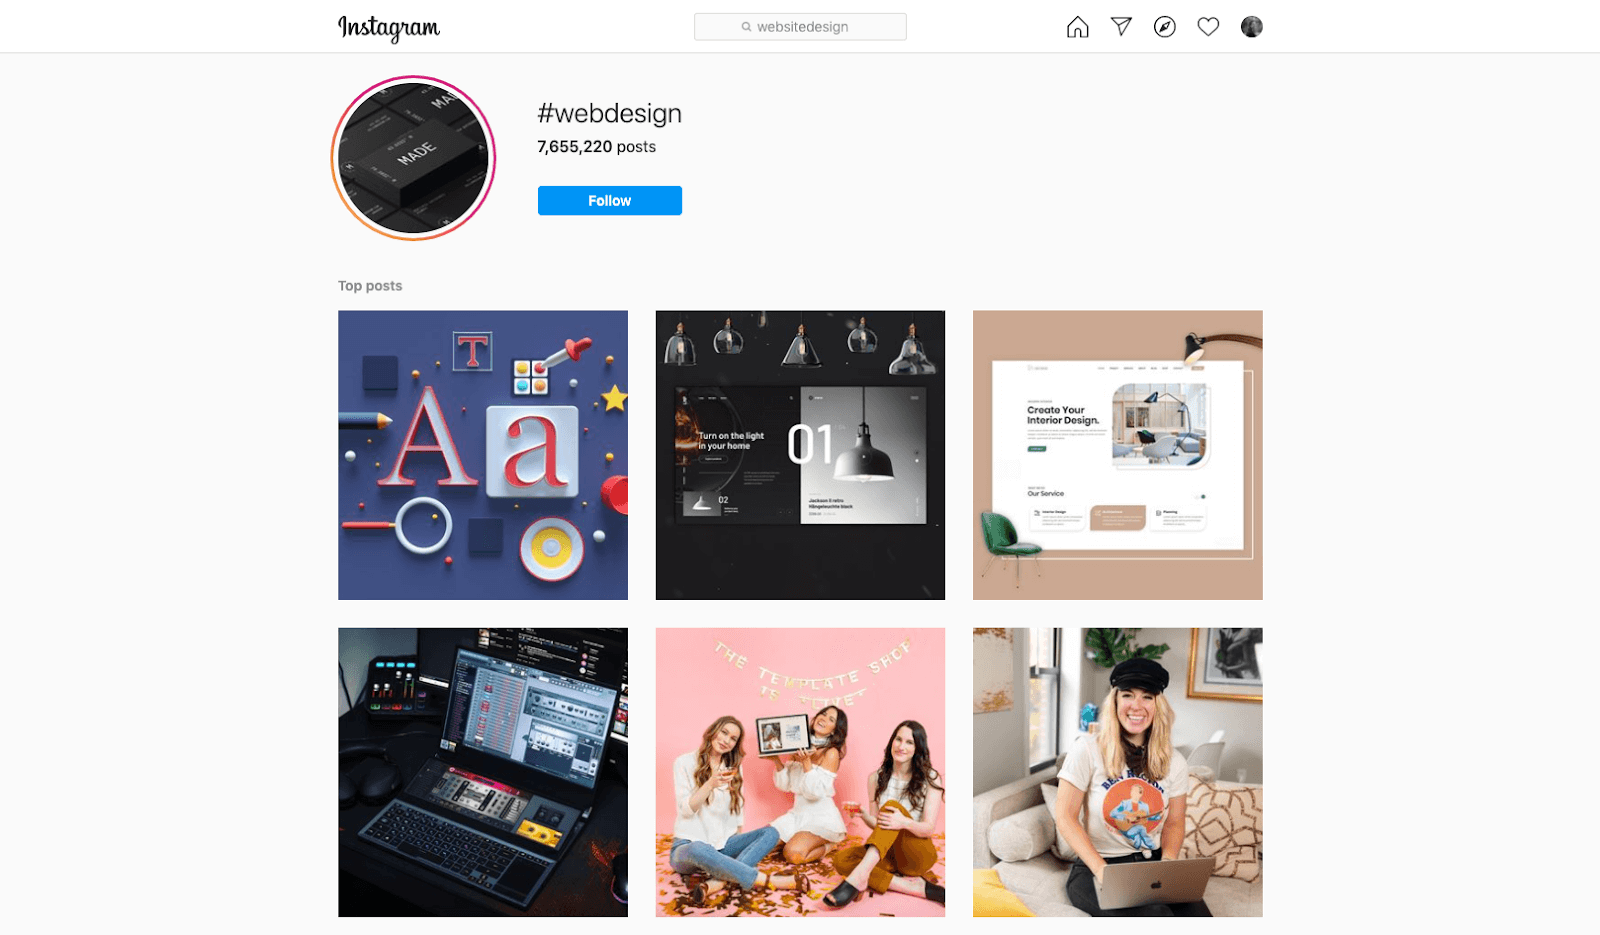 Screenshot of Instagram #webdesign hashtag page